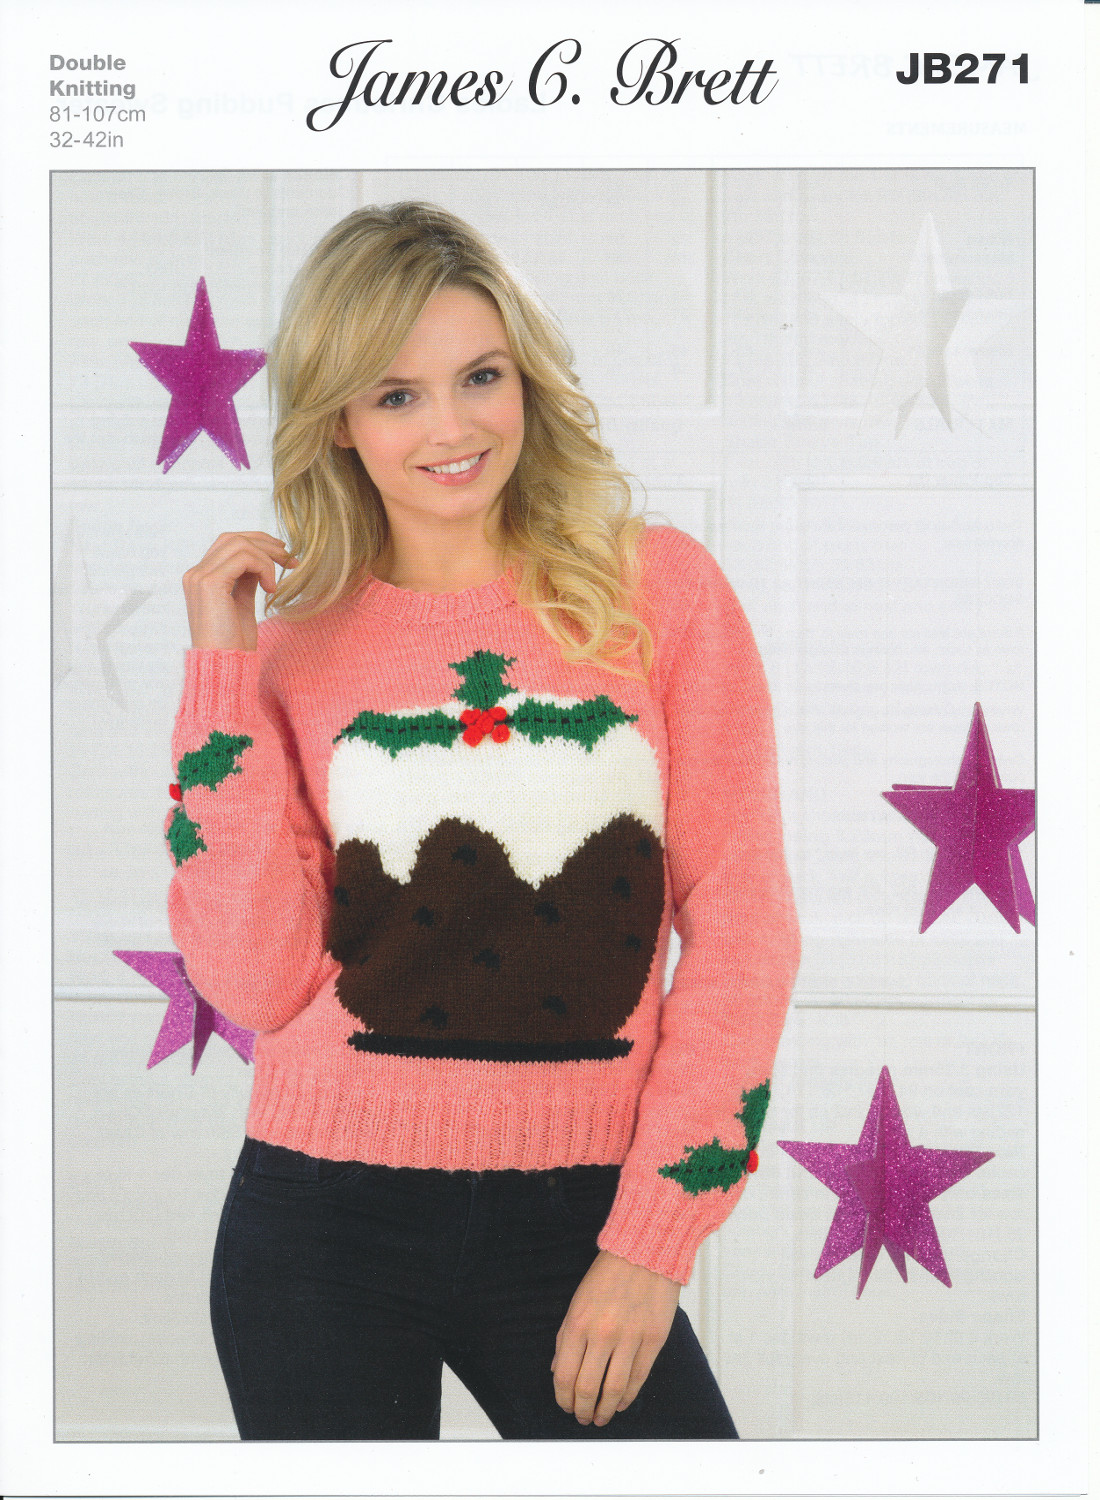 Knitting Pattern For Christmas Pudding Jumper : James Brett Double Knitting DK Pattern Ladies Christmas Pudding Sweater JB271...